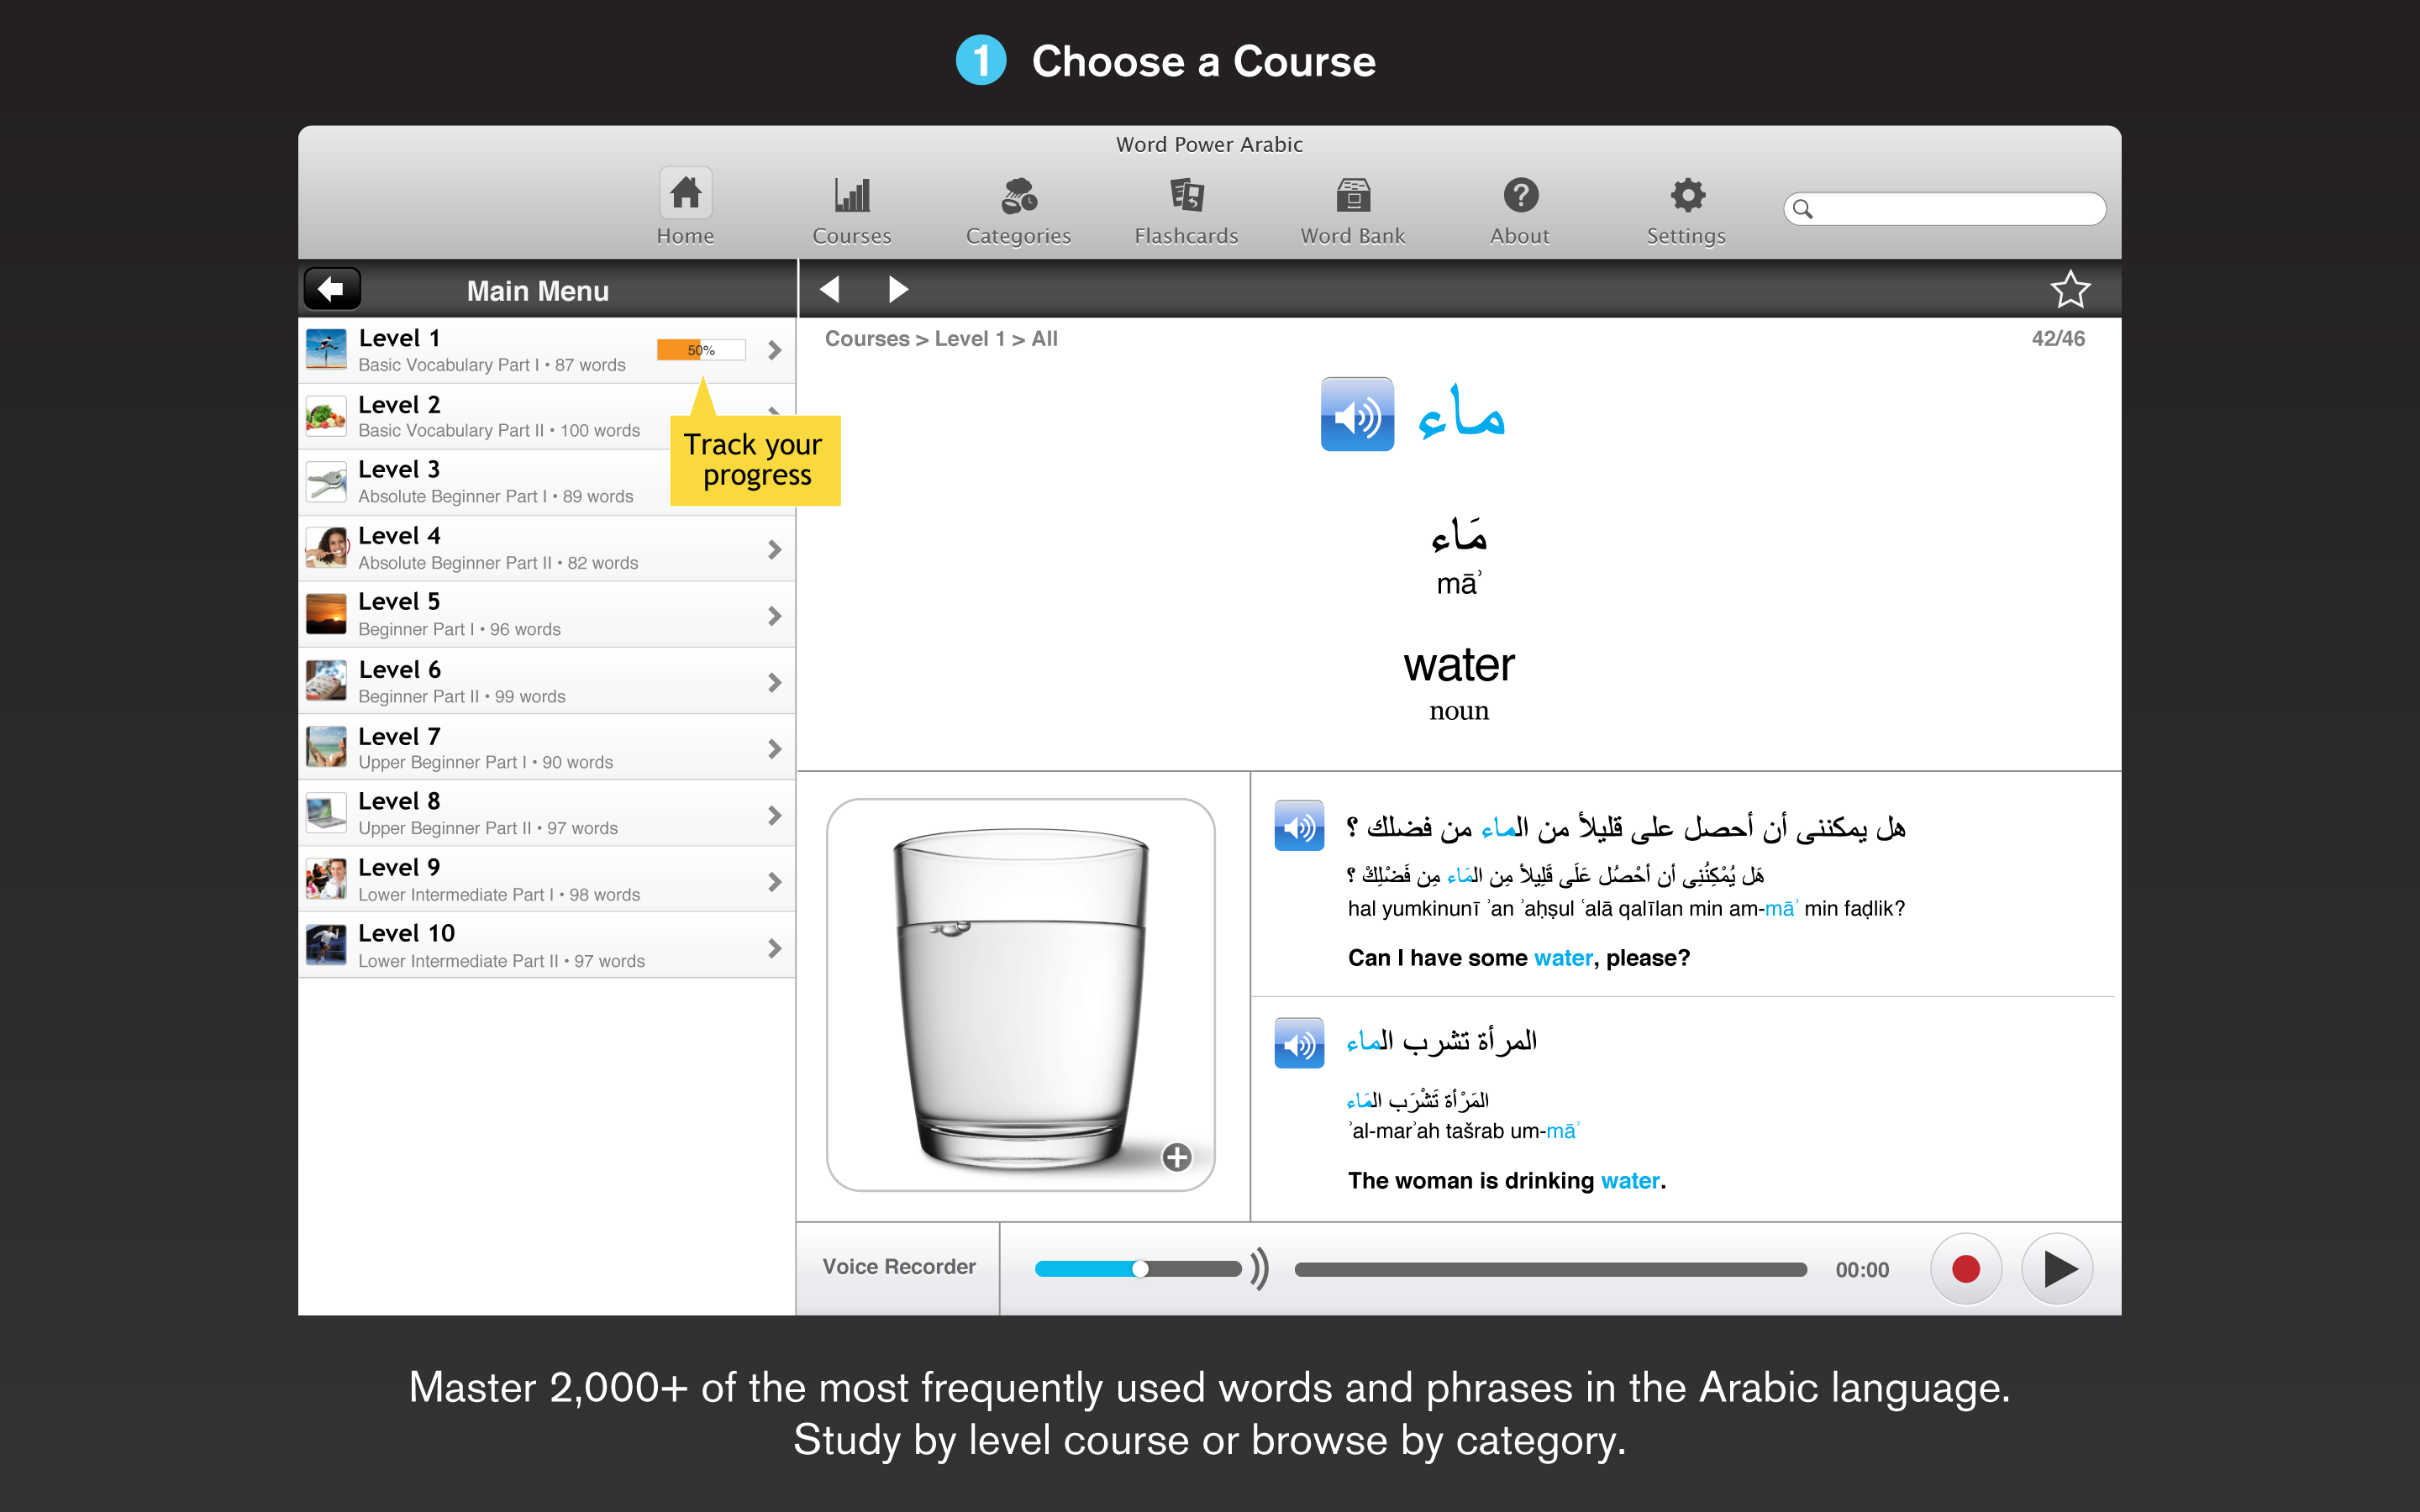 WordPower Arabic for the Mac